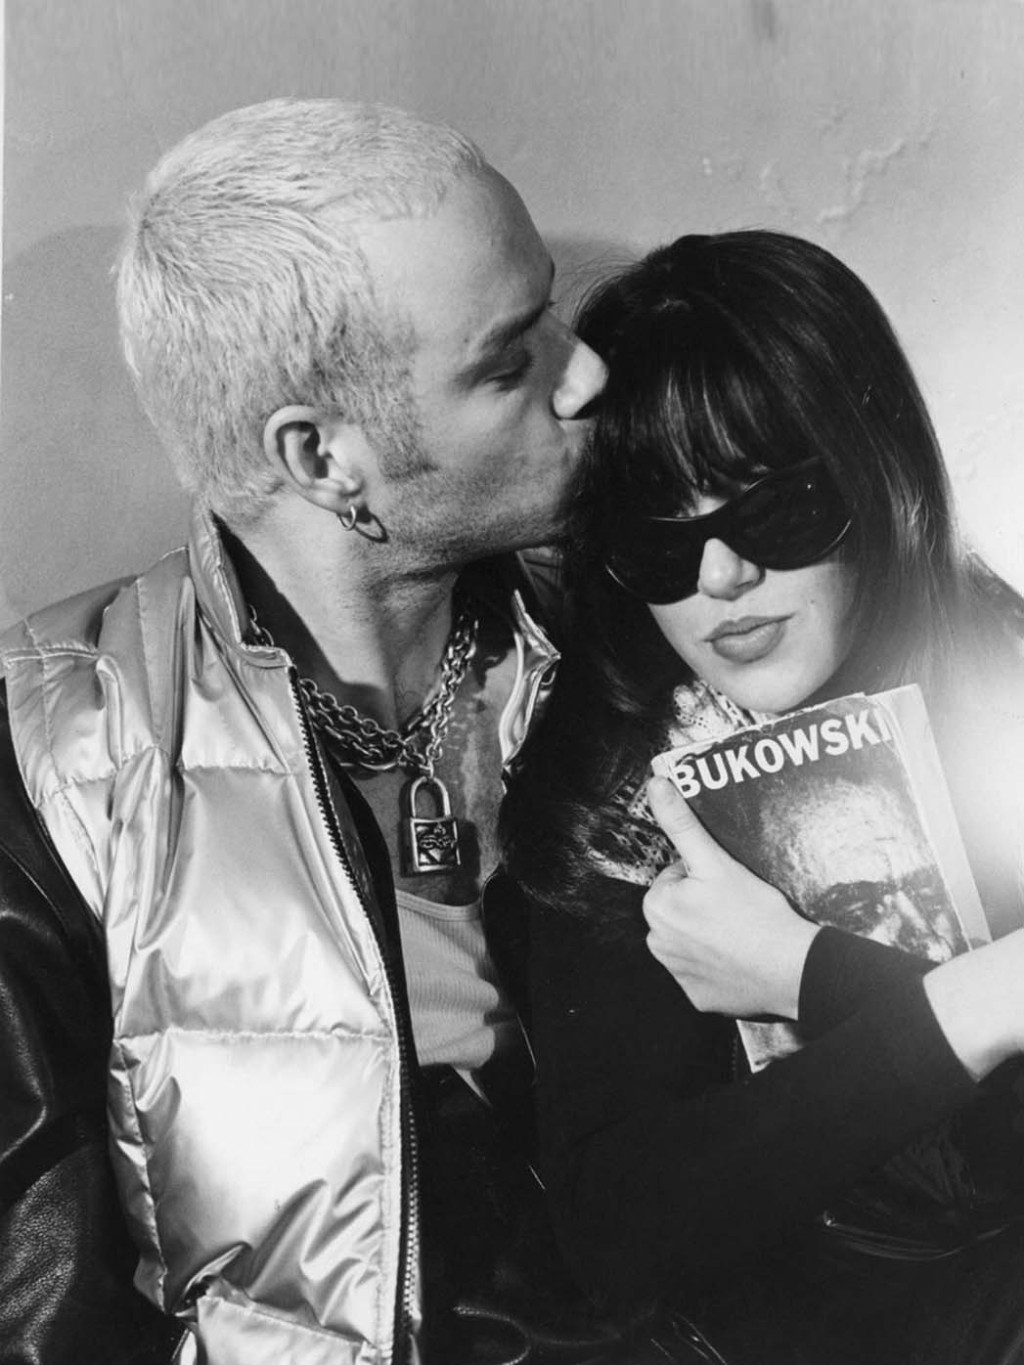 """""""We were best friends who had deep love for each other,"""" she explains of a relationship with House of Pain hip-hop star Danny Boy O'Connor, seen in a photo taken at her brother Meeno Peluce's apartment on La Brea Avenue circa 1995. """"He and [poet Charles] Bukowski were my two favorite things at that time."""""""